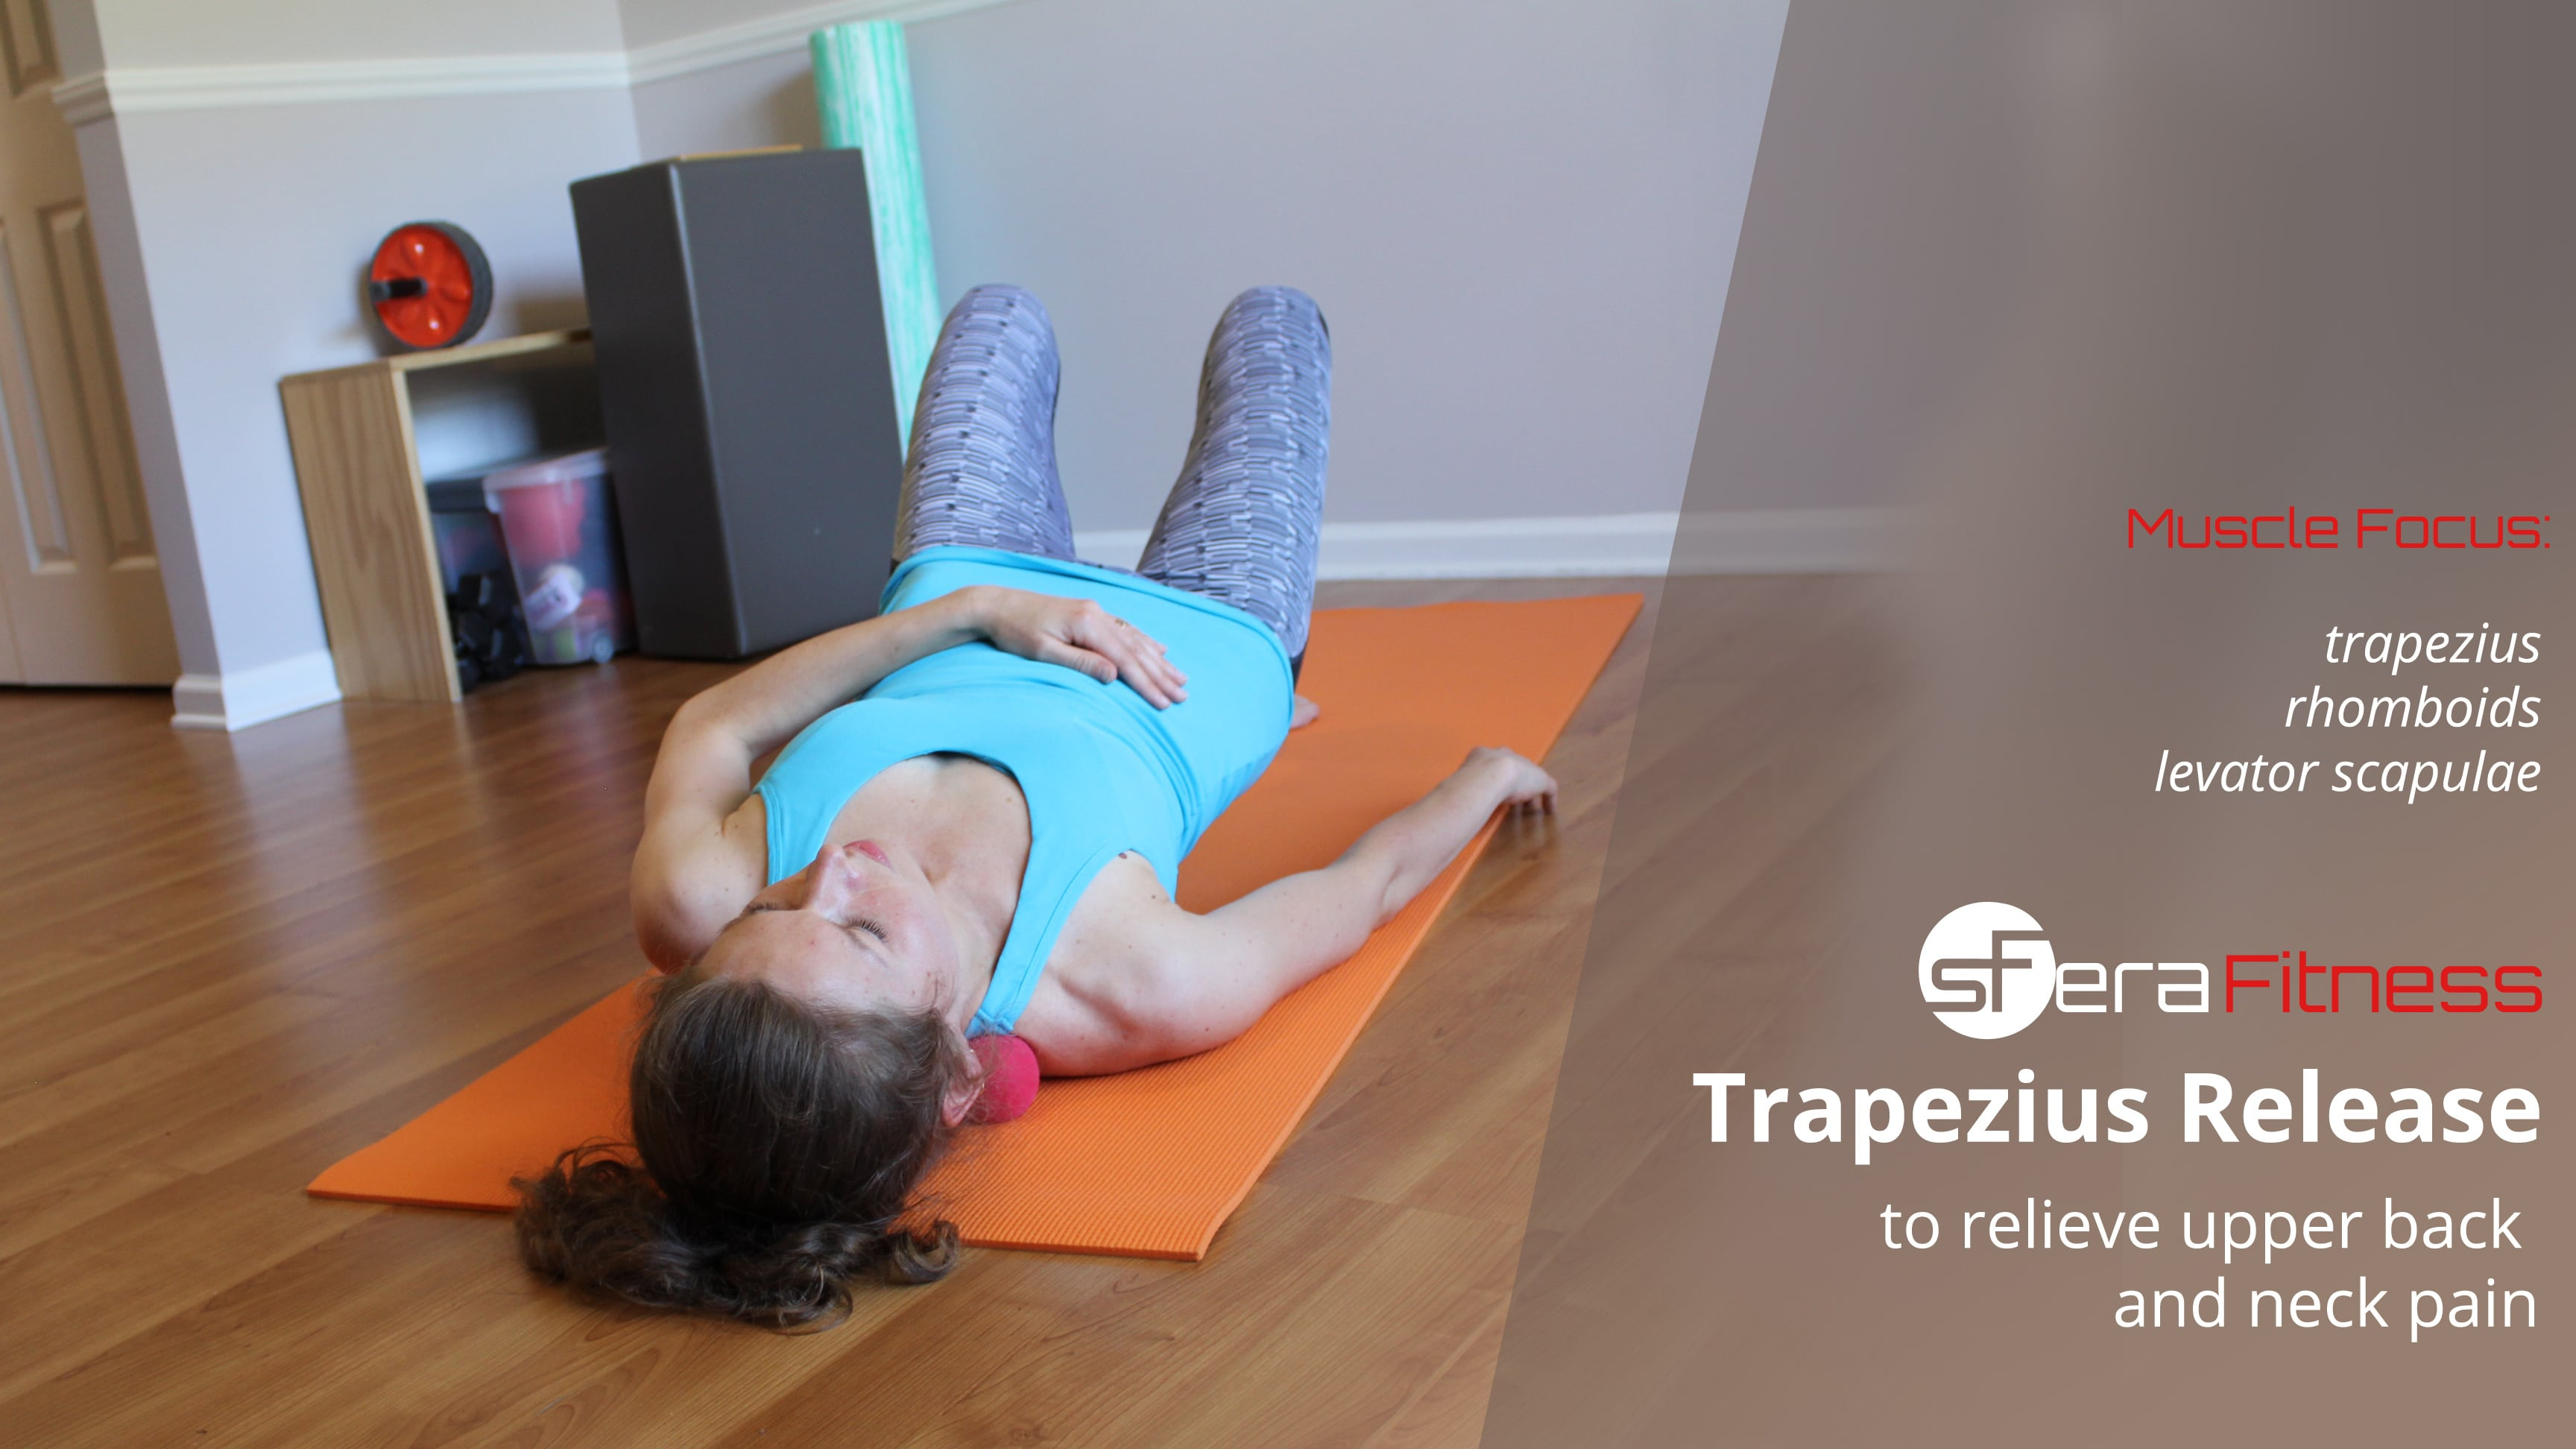 Trapezius Release for Upper Back and Neck Pain Relief